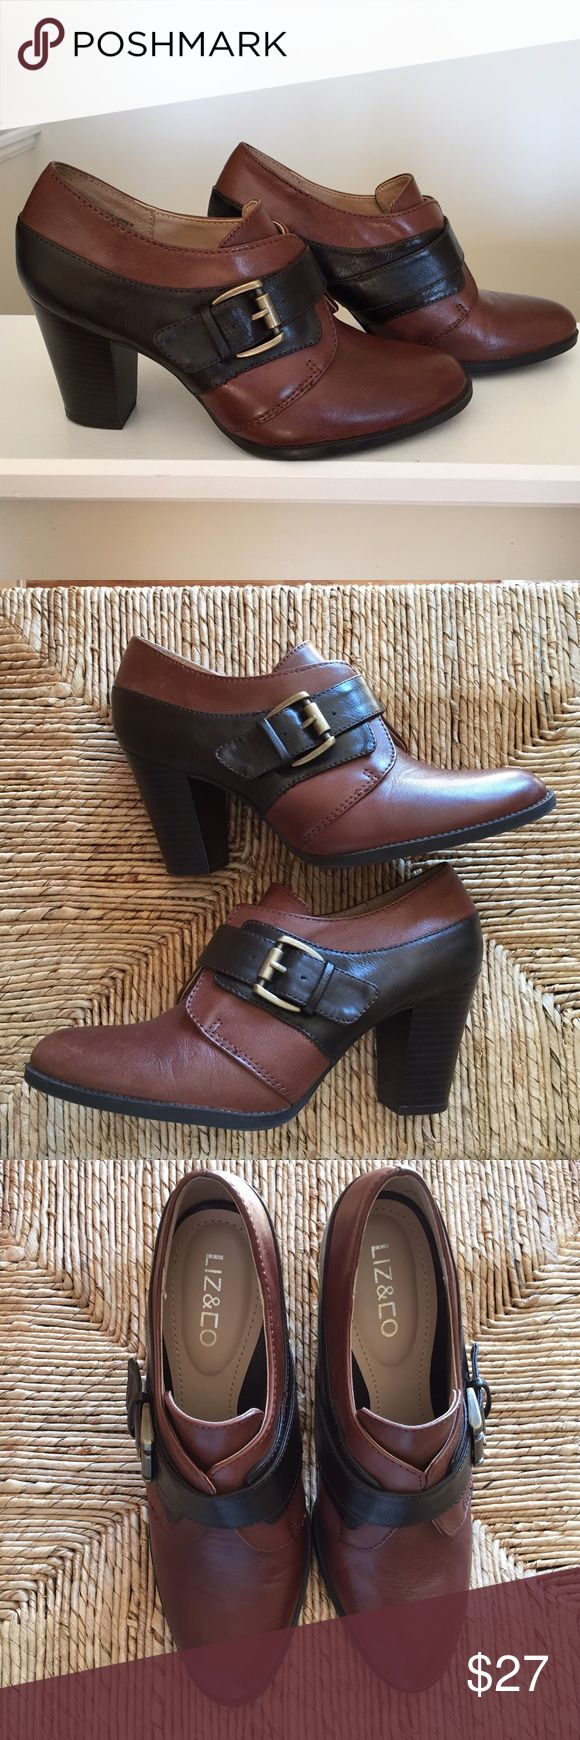 Ankle Boots by Liz & Co Size 7M Two Tone Brown Leather Ankle Boots With Buckle Feature Very Little wear Like New! Size 7 by Liz & Co Liz & Co Shoes Ankle Boots & Booties